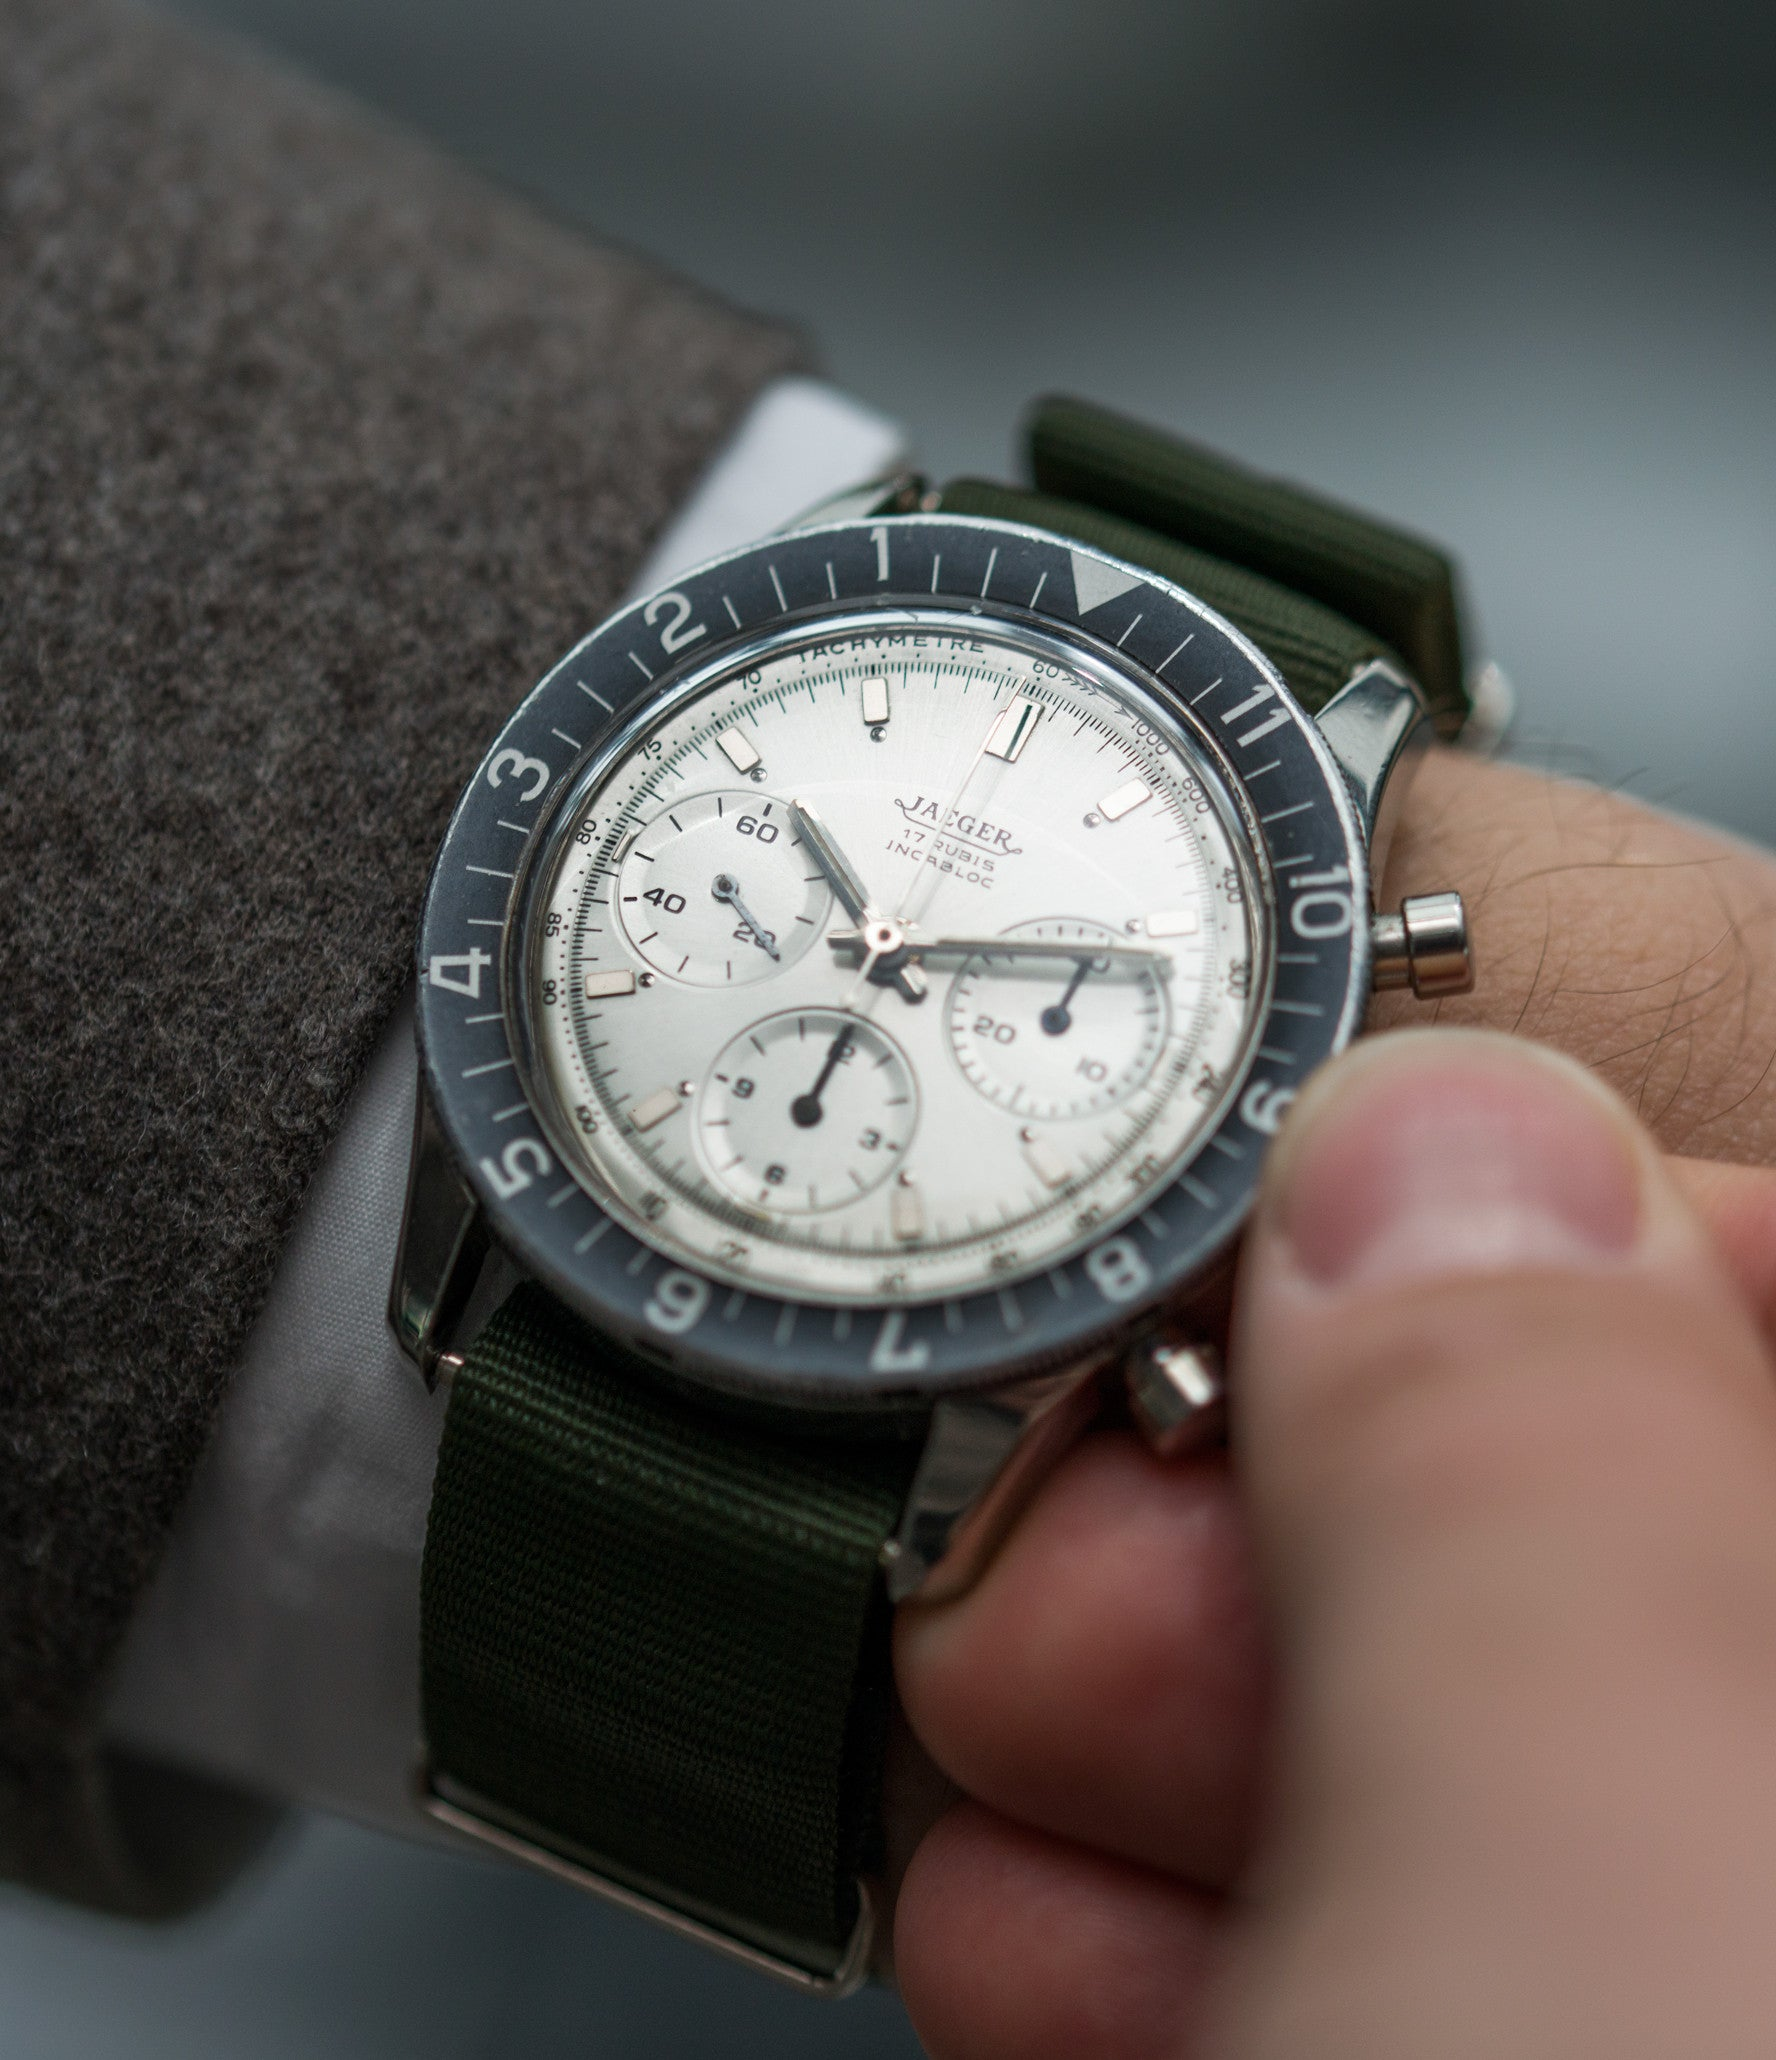 on the wrist Jaeger-LeCoultre 4ATM E. 13001 steel vintage chronograph watch online at A Collected Man London seller rare vintage watches